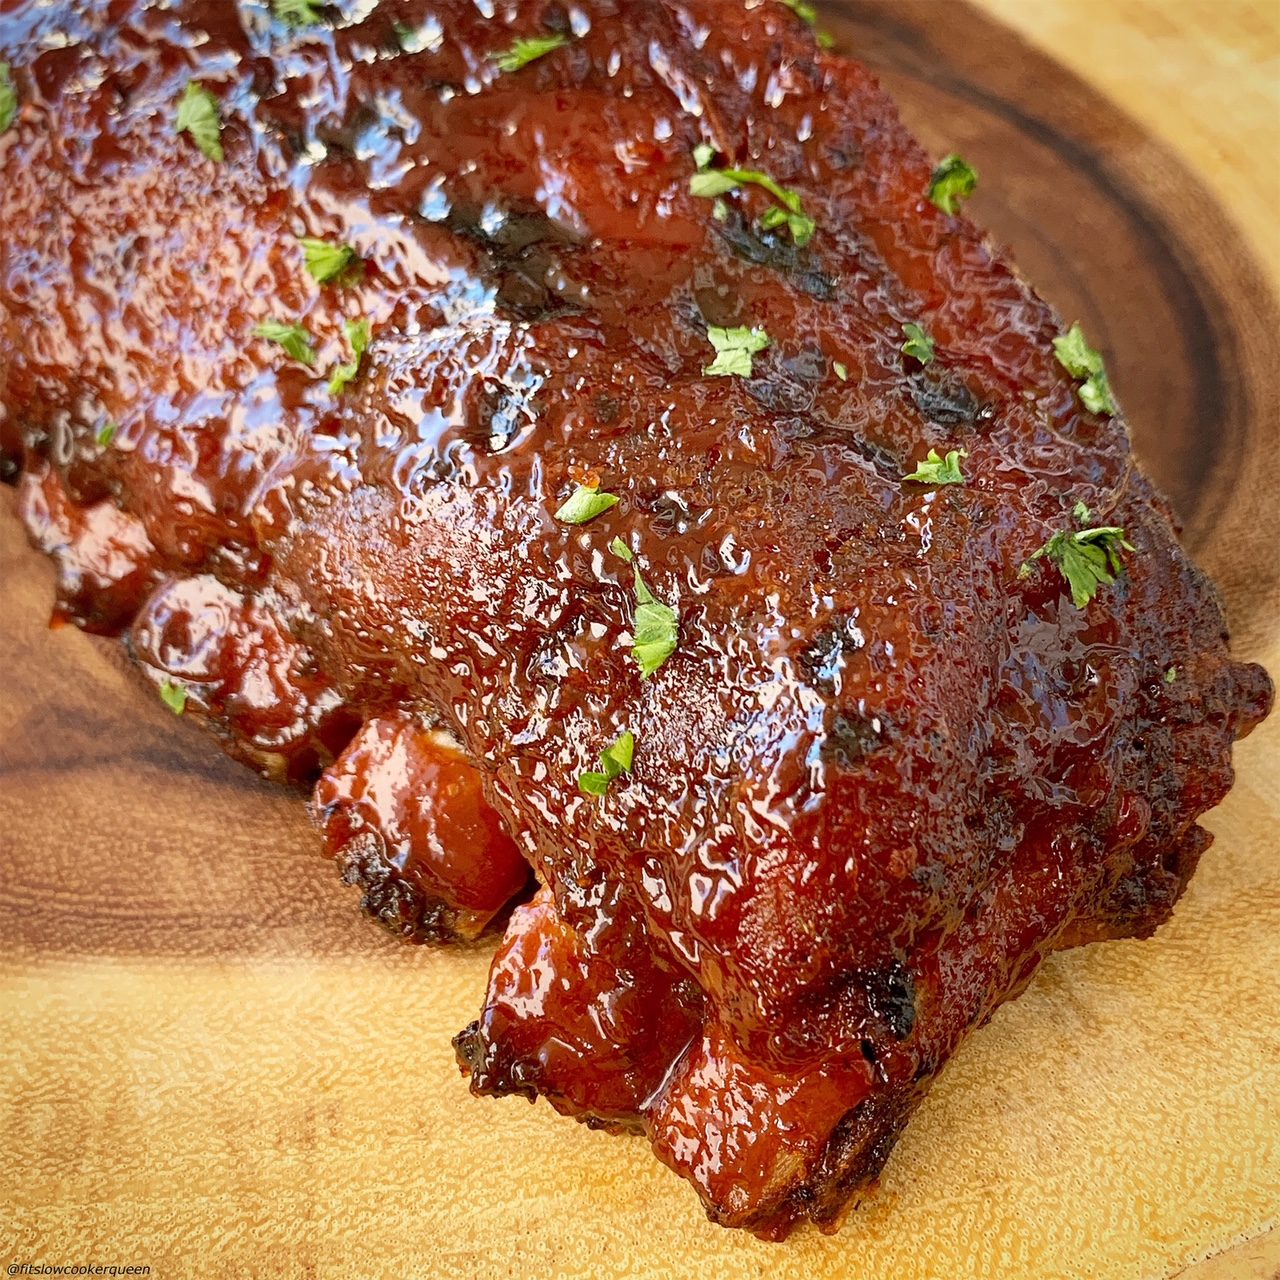 plated ribs before slicing for {VIDEO} Slow Cooker Instant Pot Ribs (Low-Carb, Paleo, Whole30)